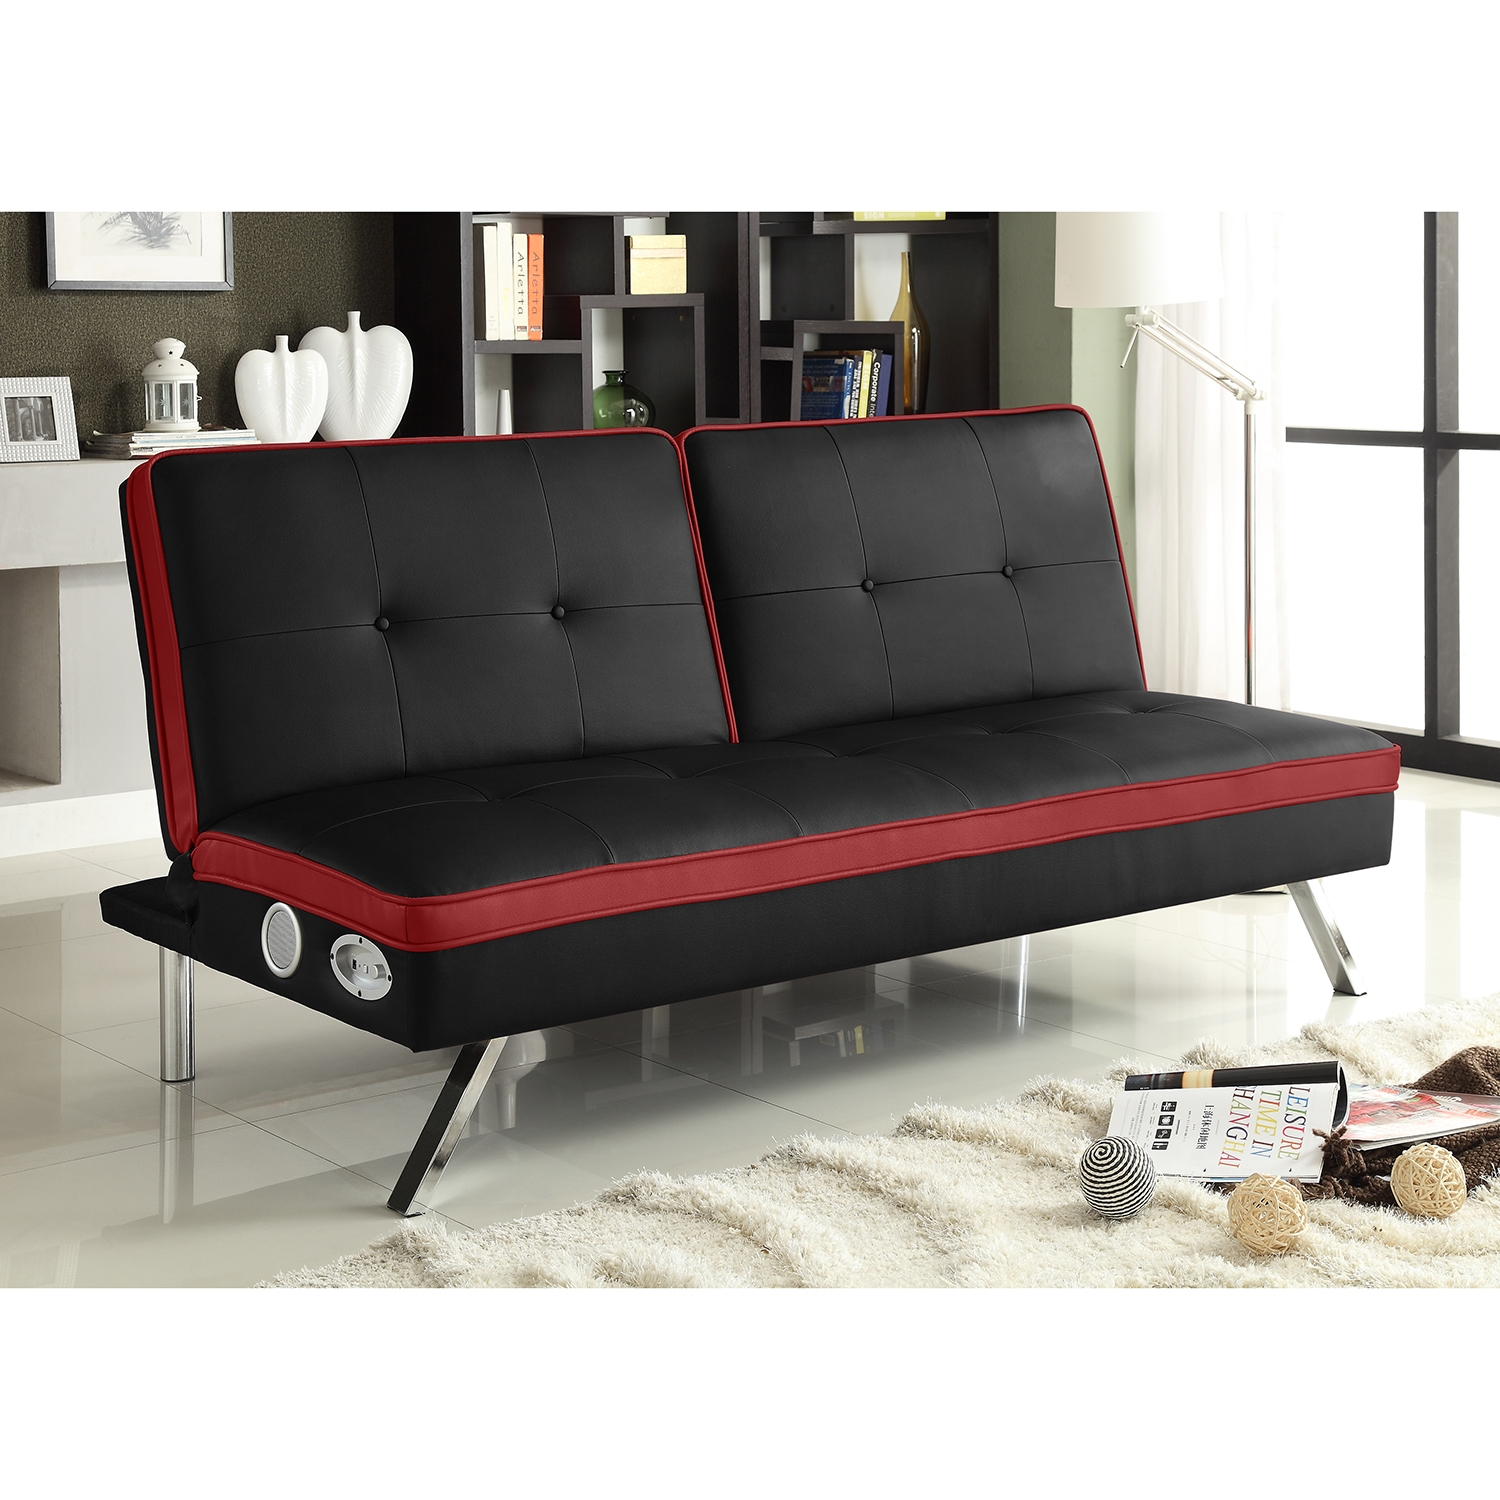 Image of: Louis Futon Black and Red